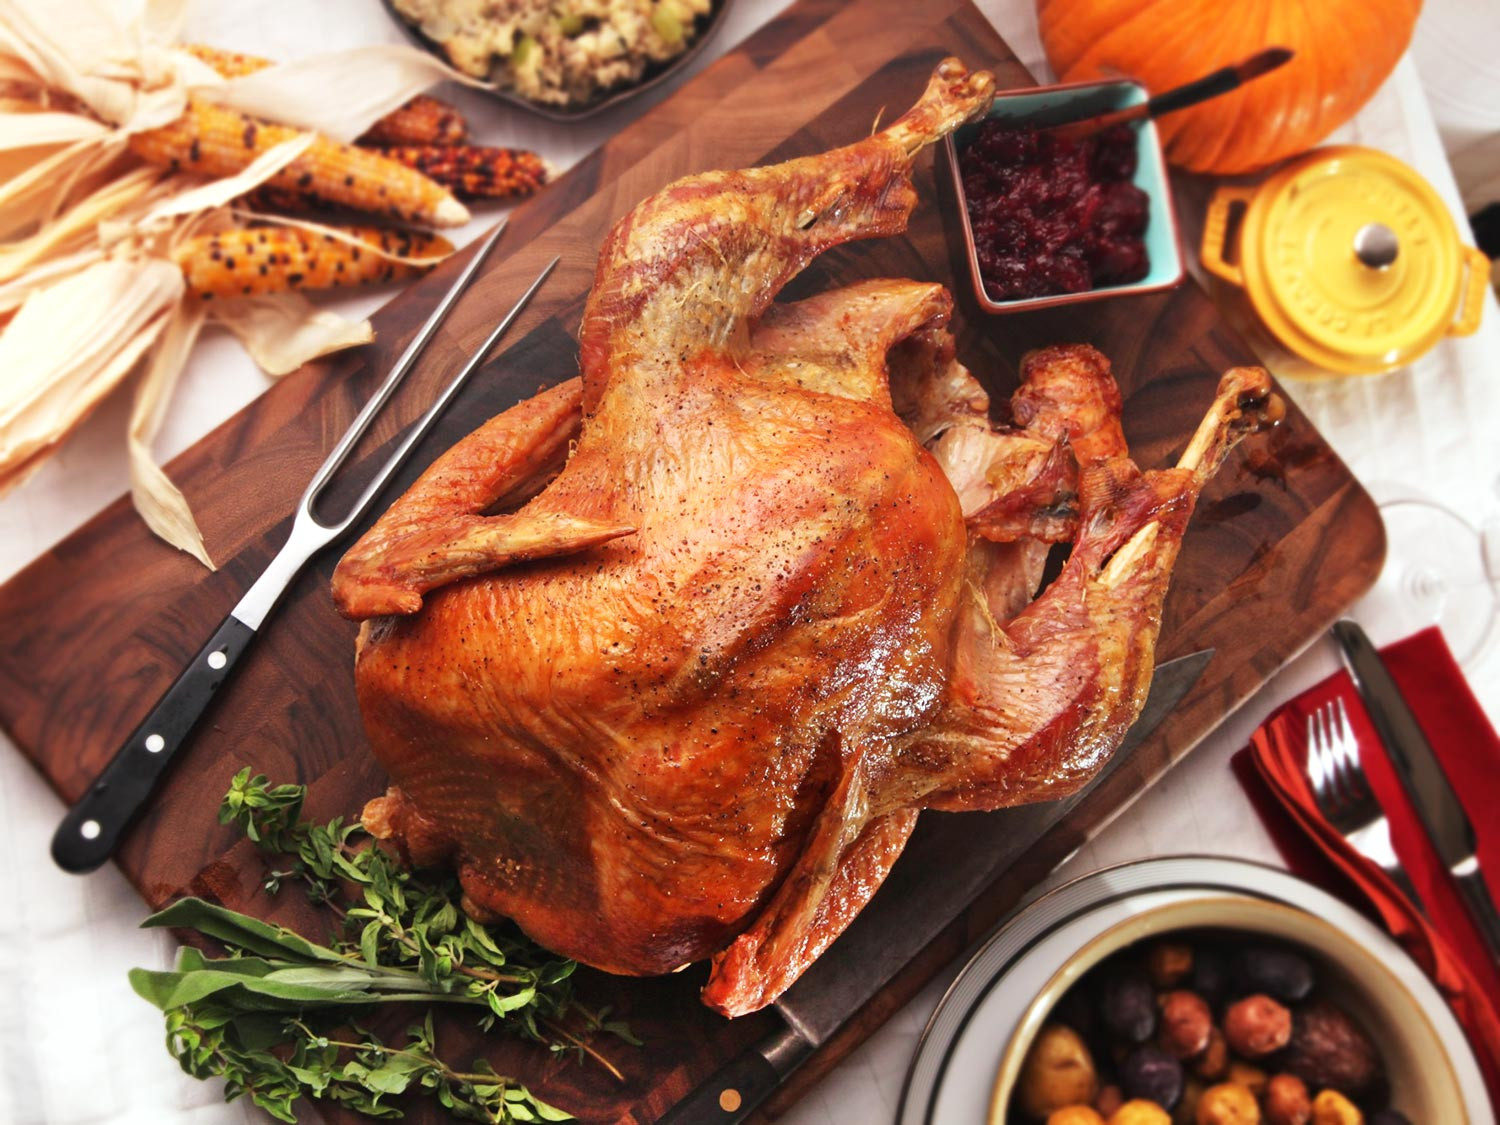 Best Turkey Brands To Buy For Thanksgiving  The Best Simple Roast Turkey With Gravy Recipe